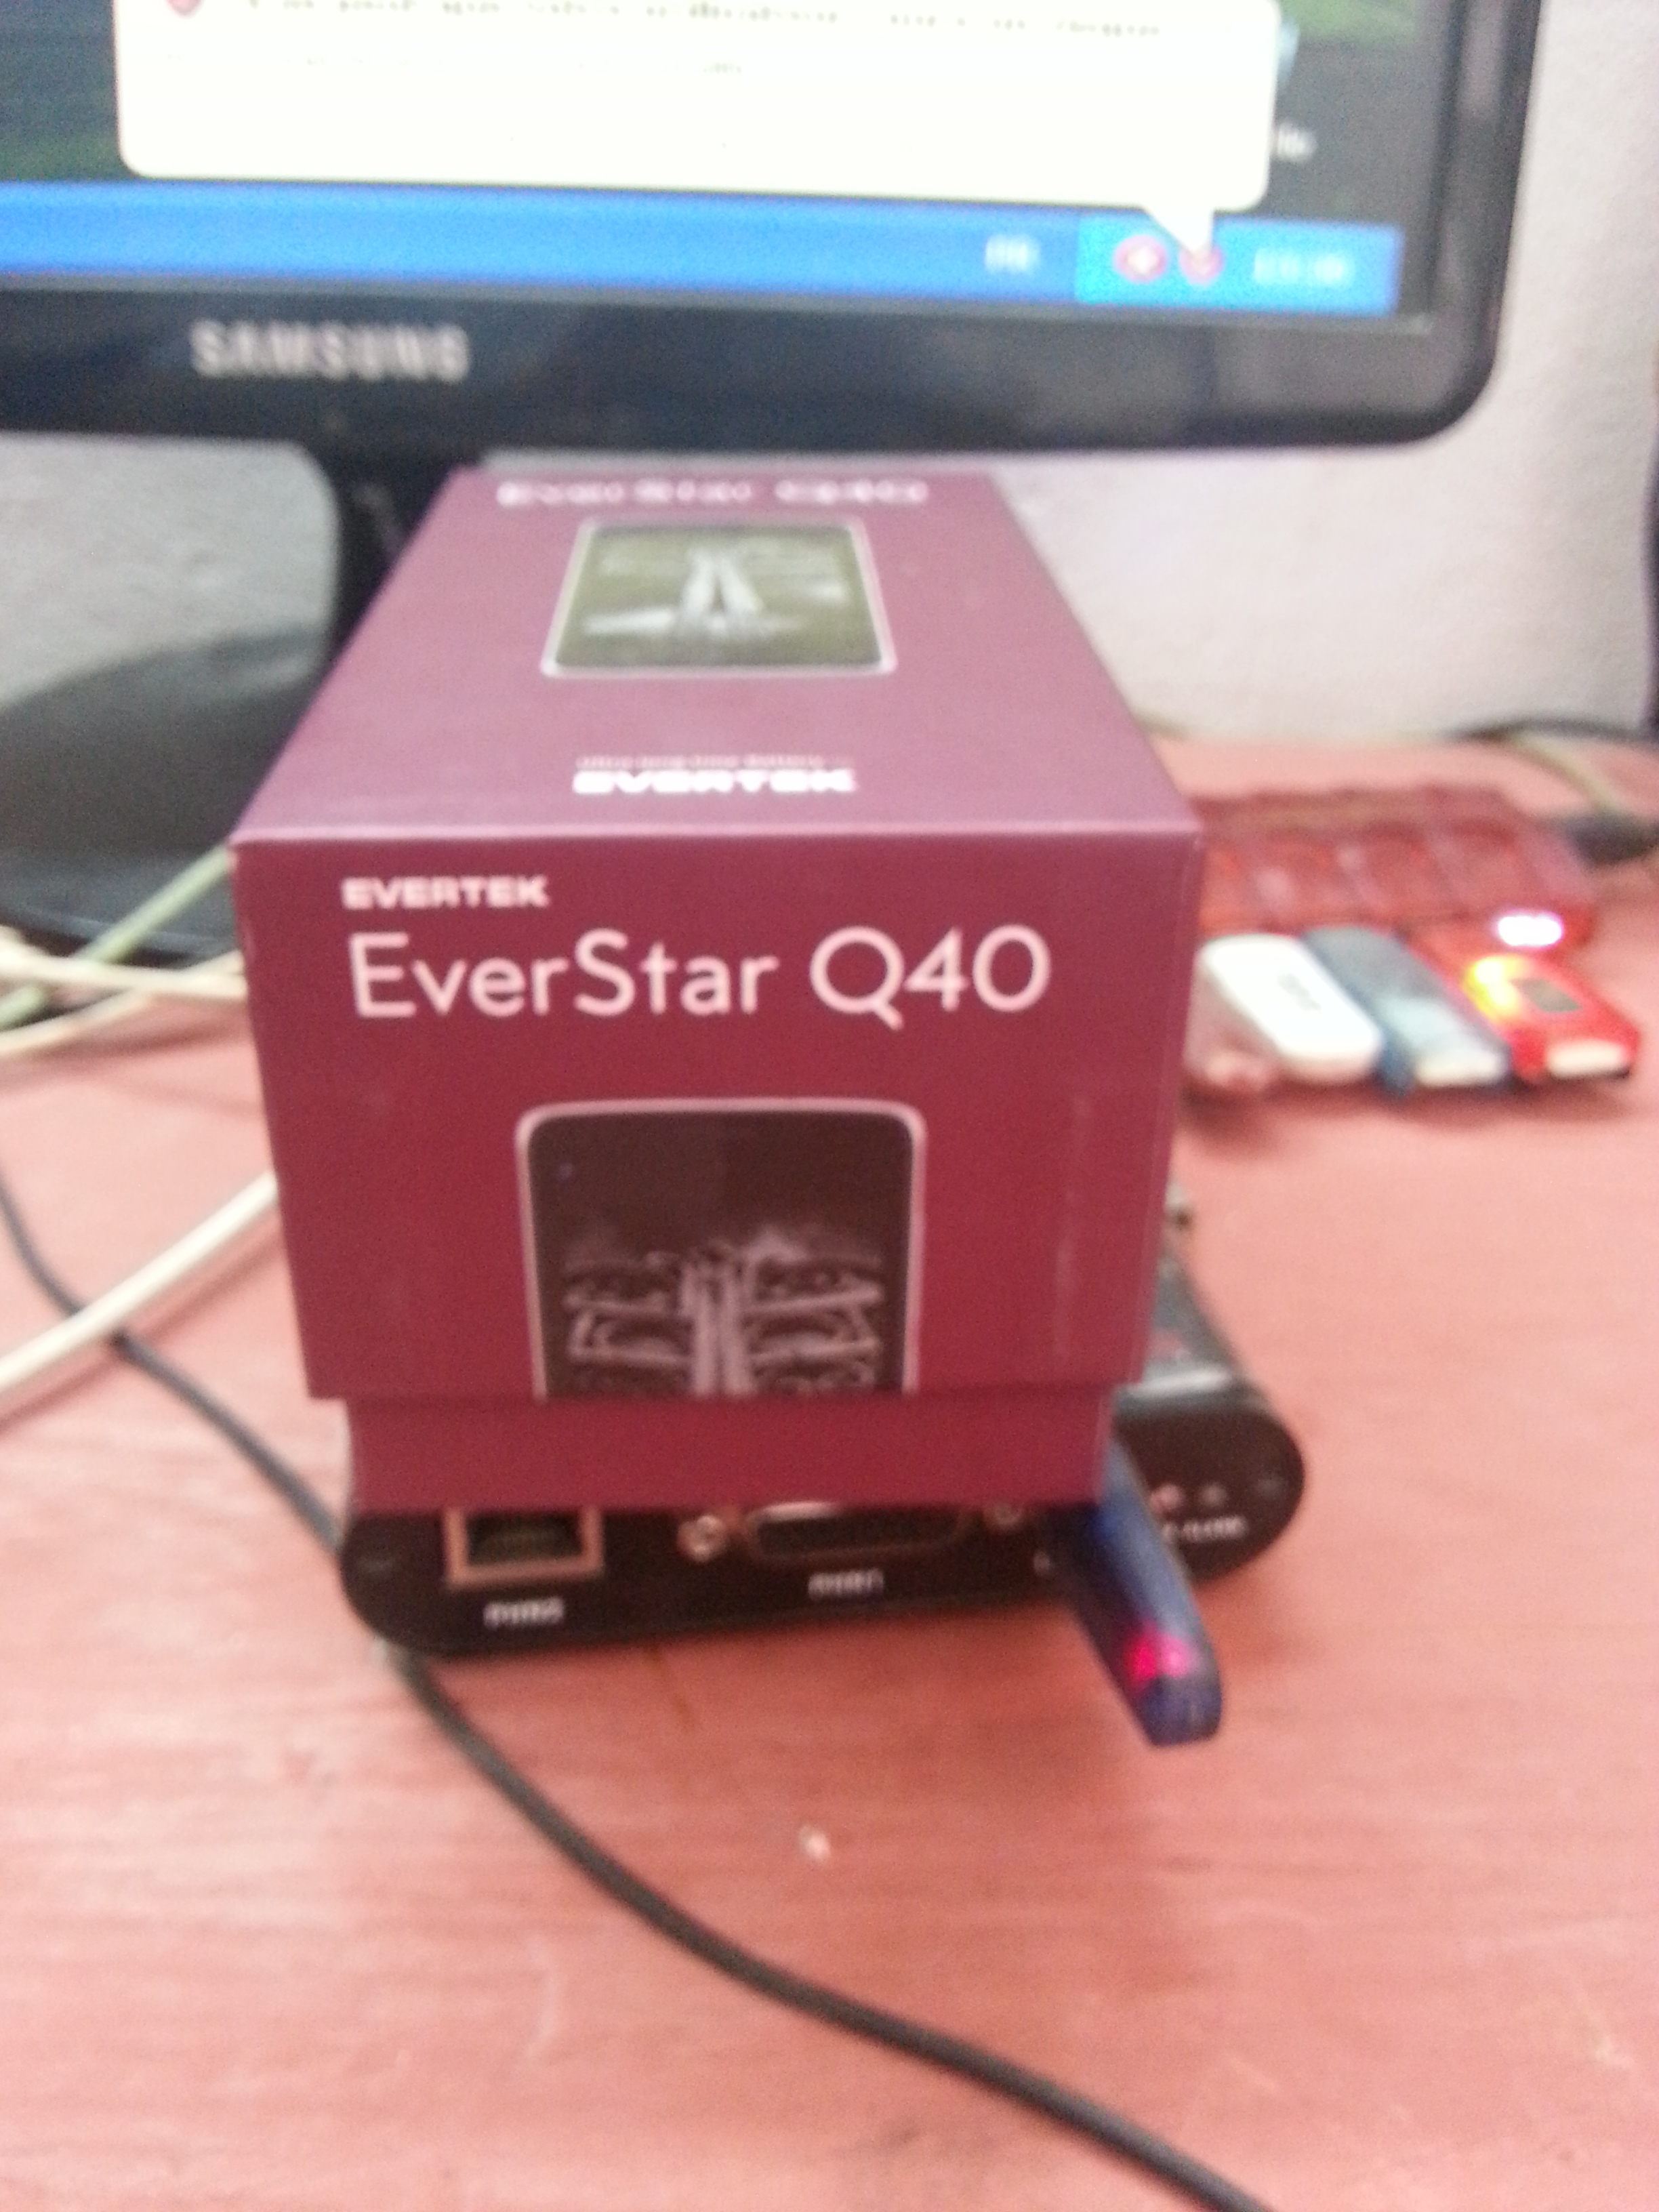 :PAID: firmware Everstar Q40 - صفحة 3 0407791001464788190